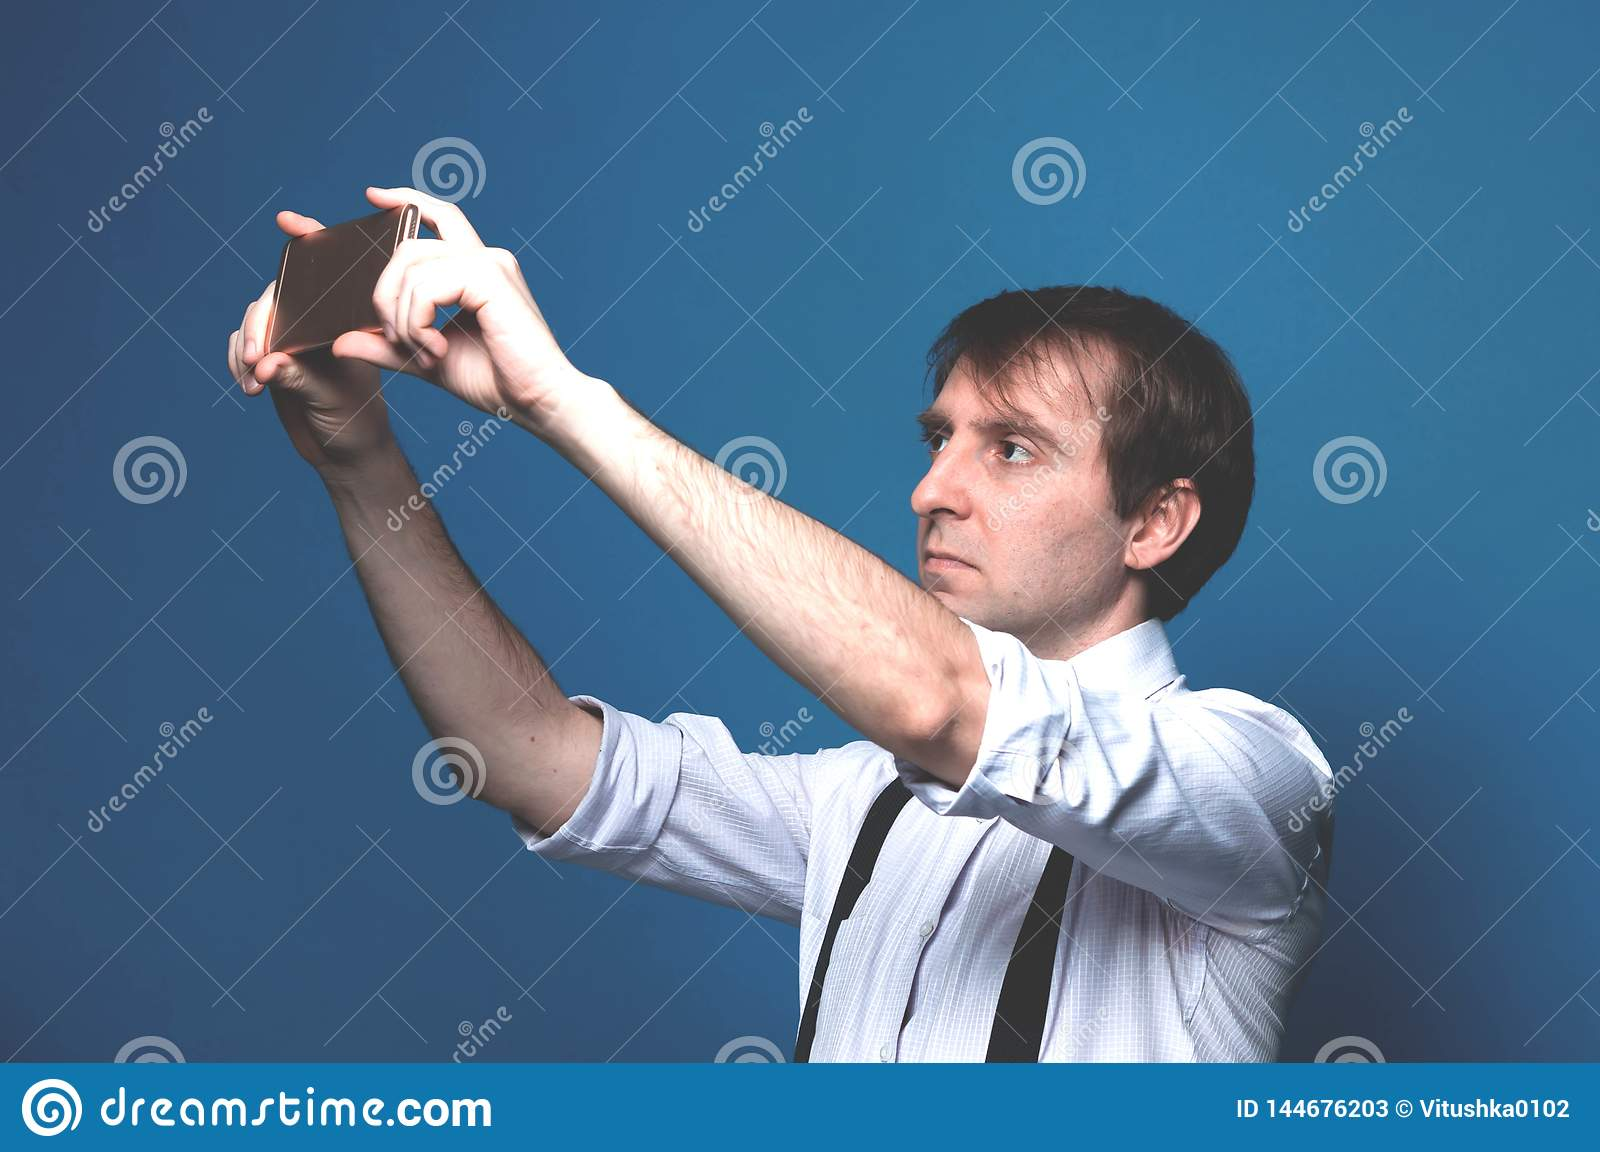 Man in shirt with rolled up sleeves and black suspender standing and taking selfie on blue background